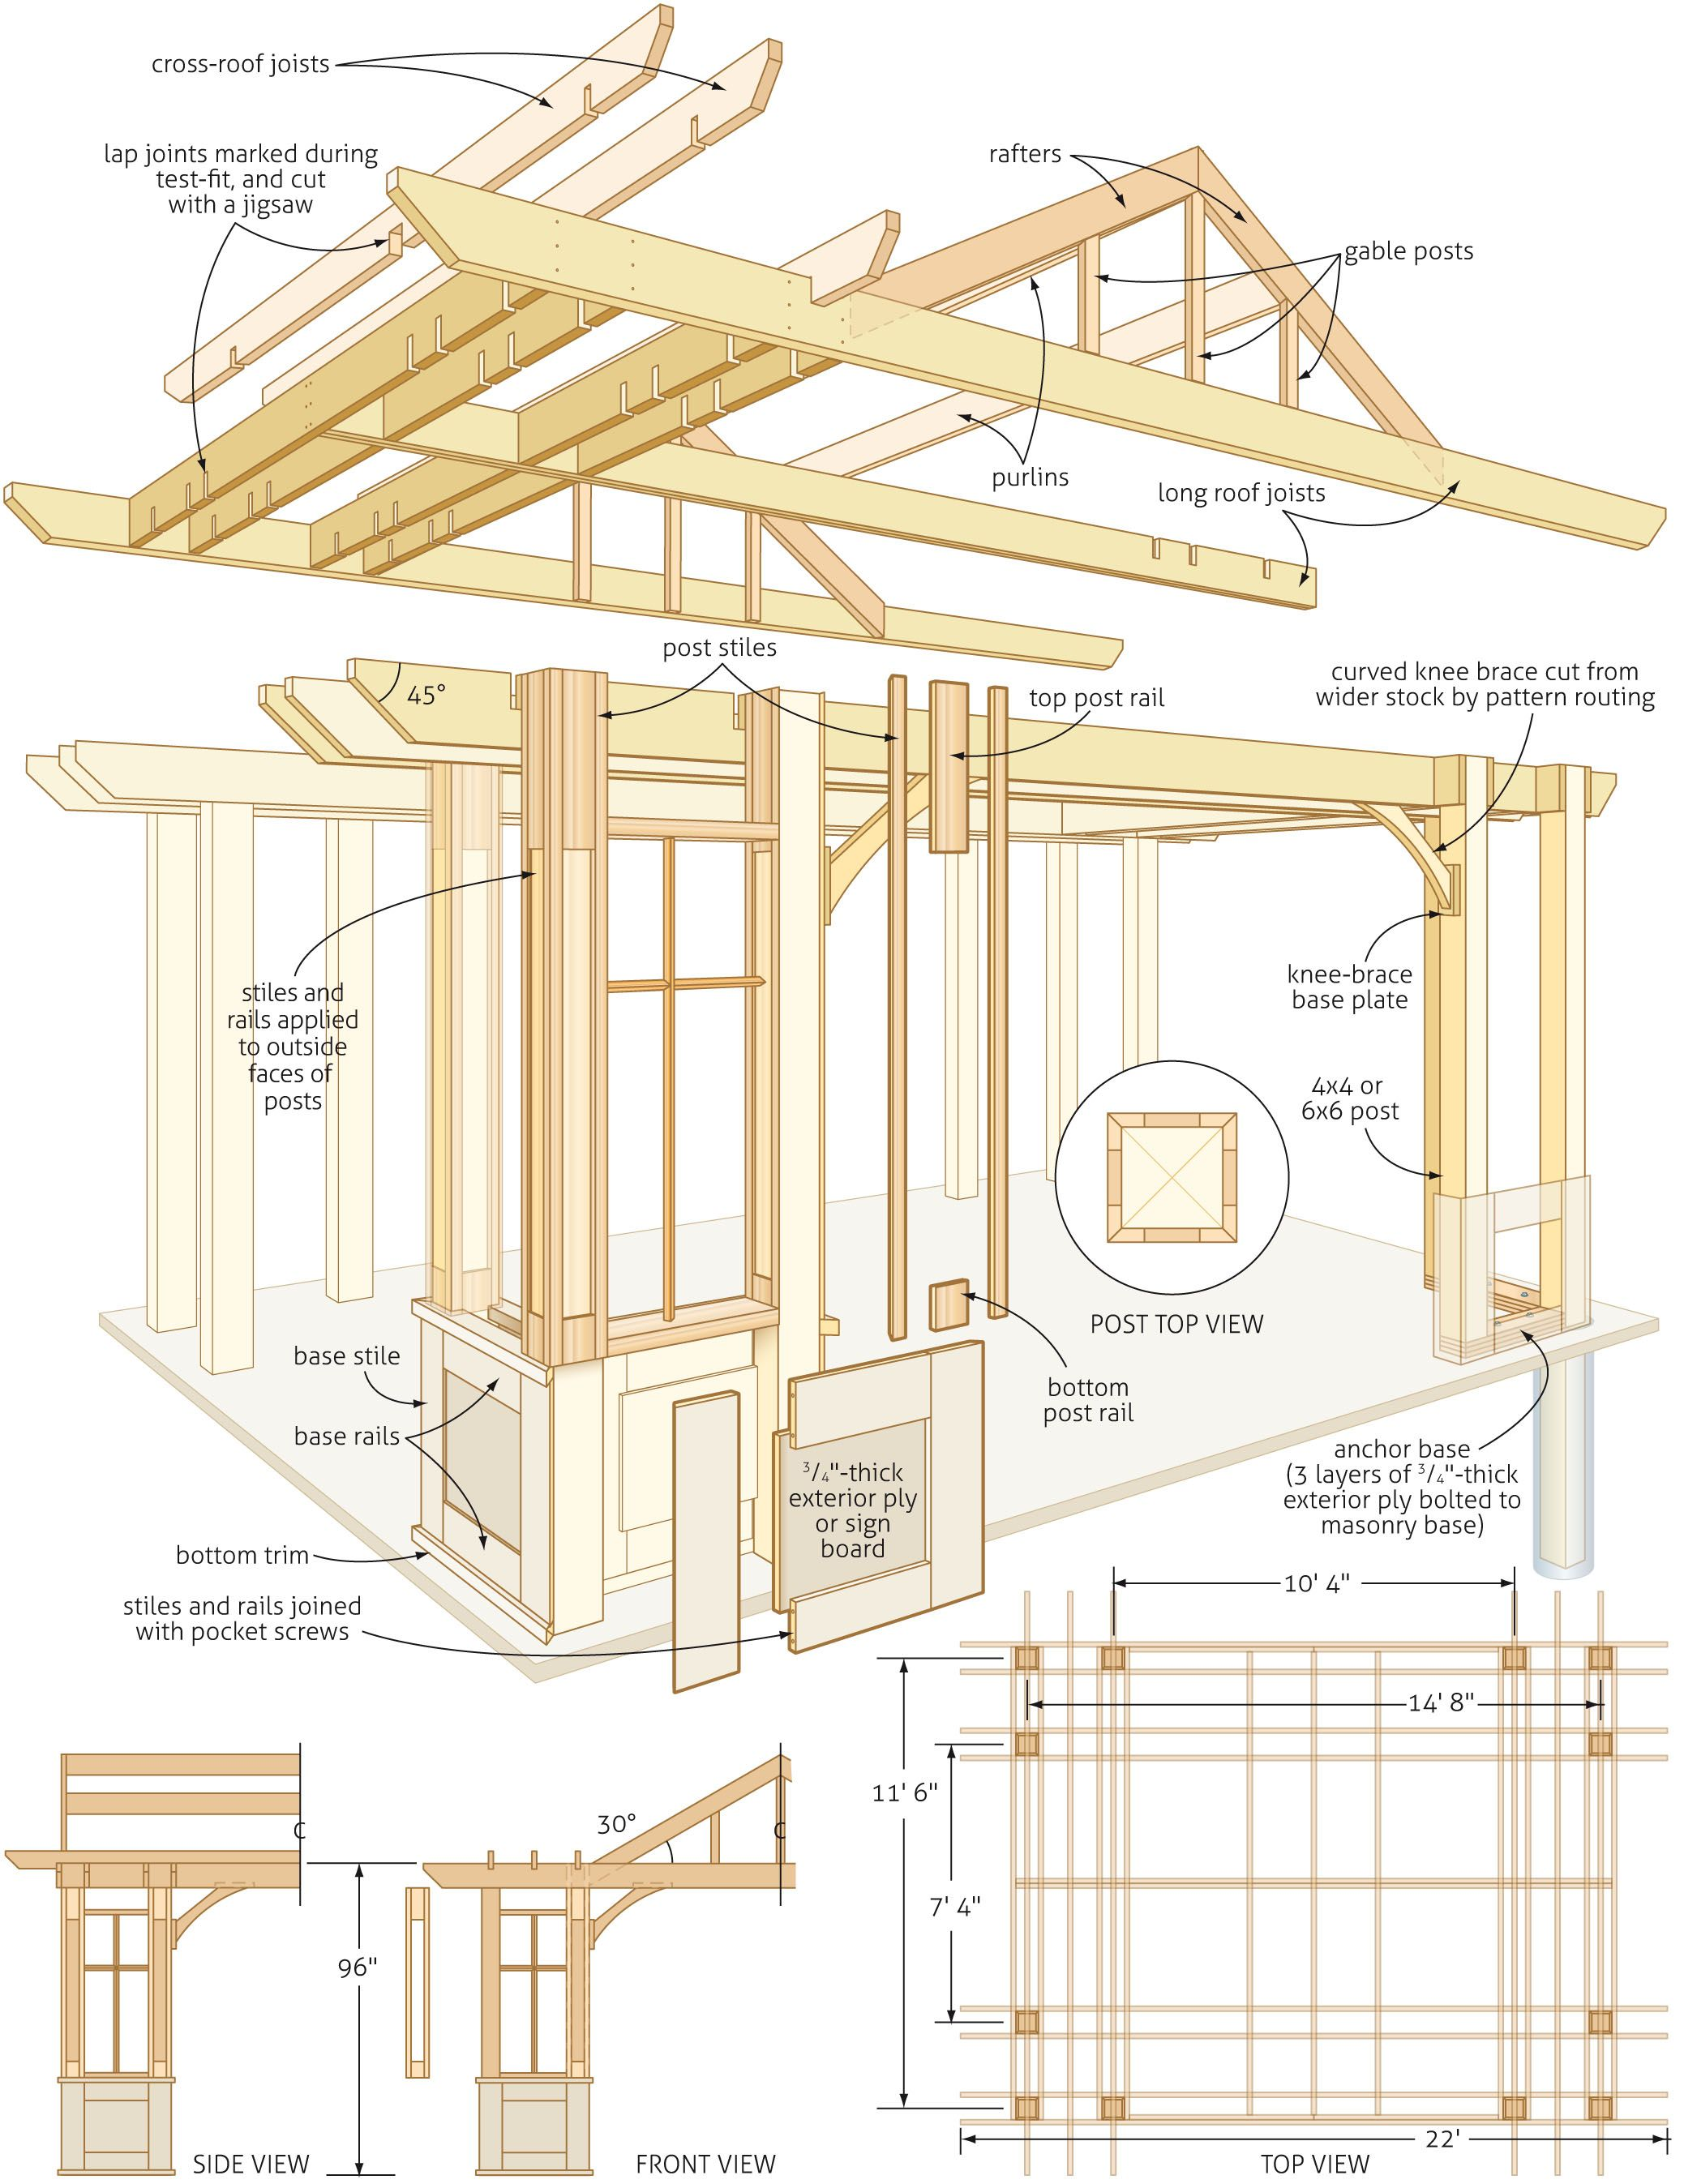 diy pergola canadian home workshop wood structures details pinterest carpinter a. Black Bedroom Furniture Sets. Home Design Ideas